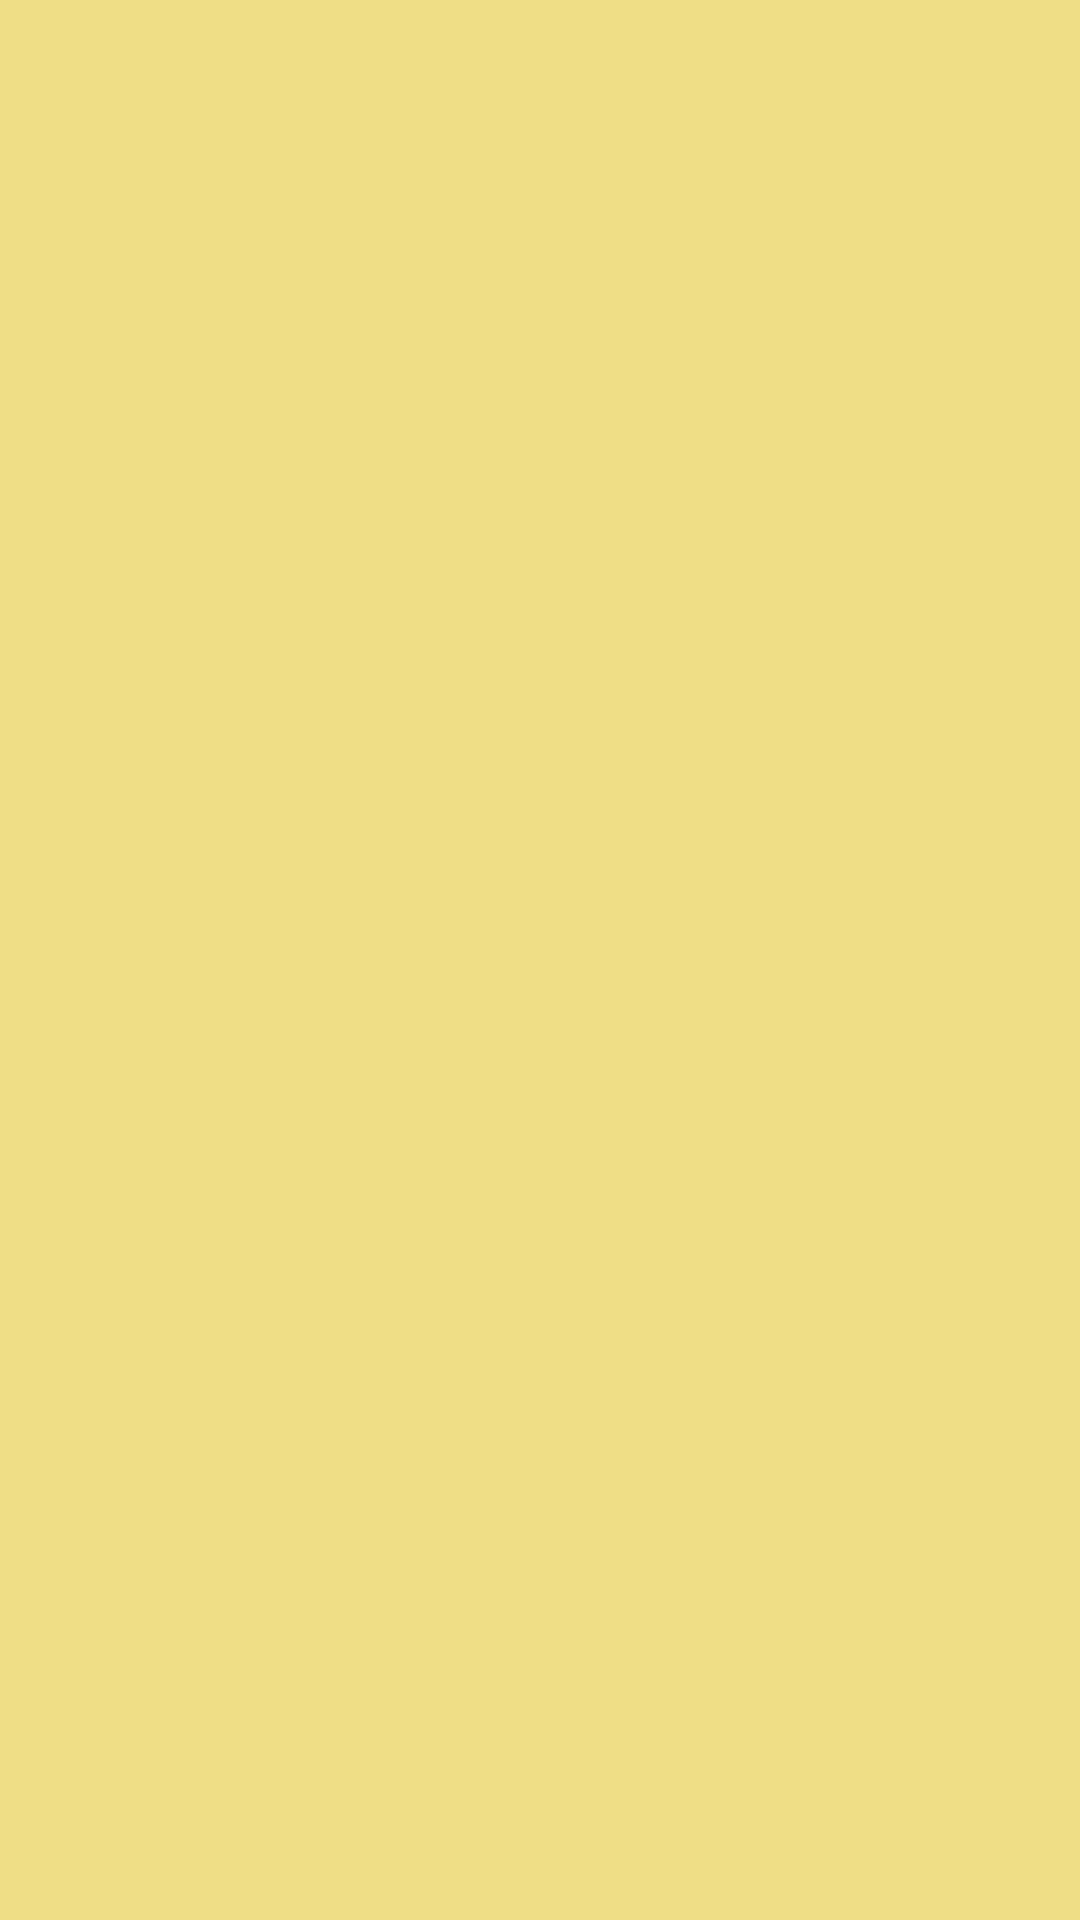 1080x1920 Buff Solid Color Background